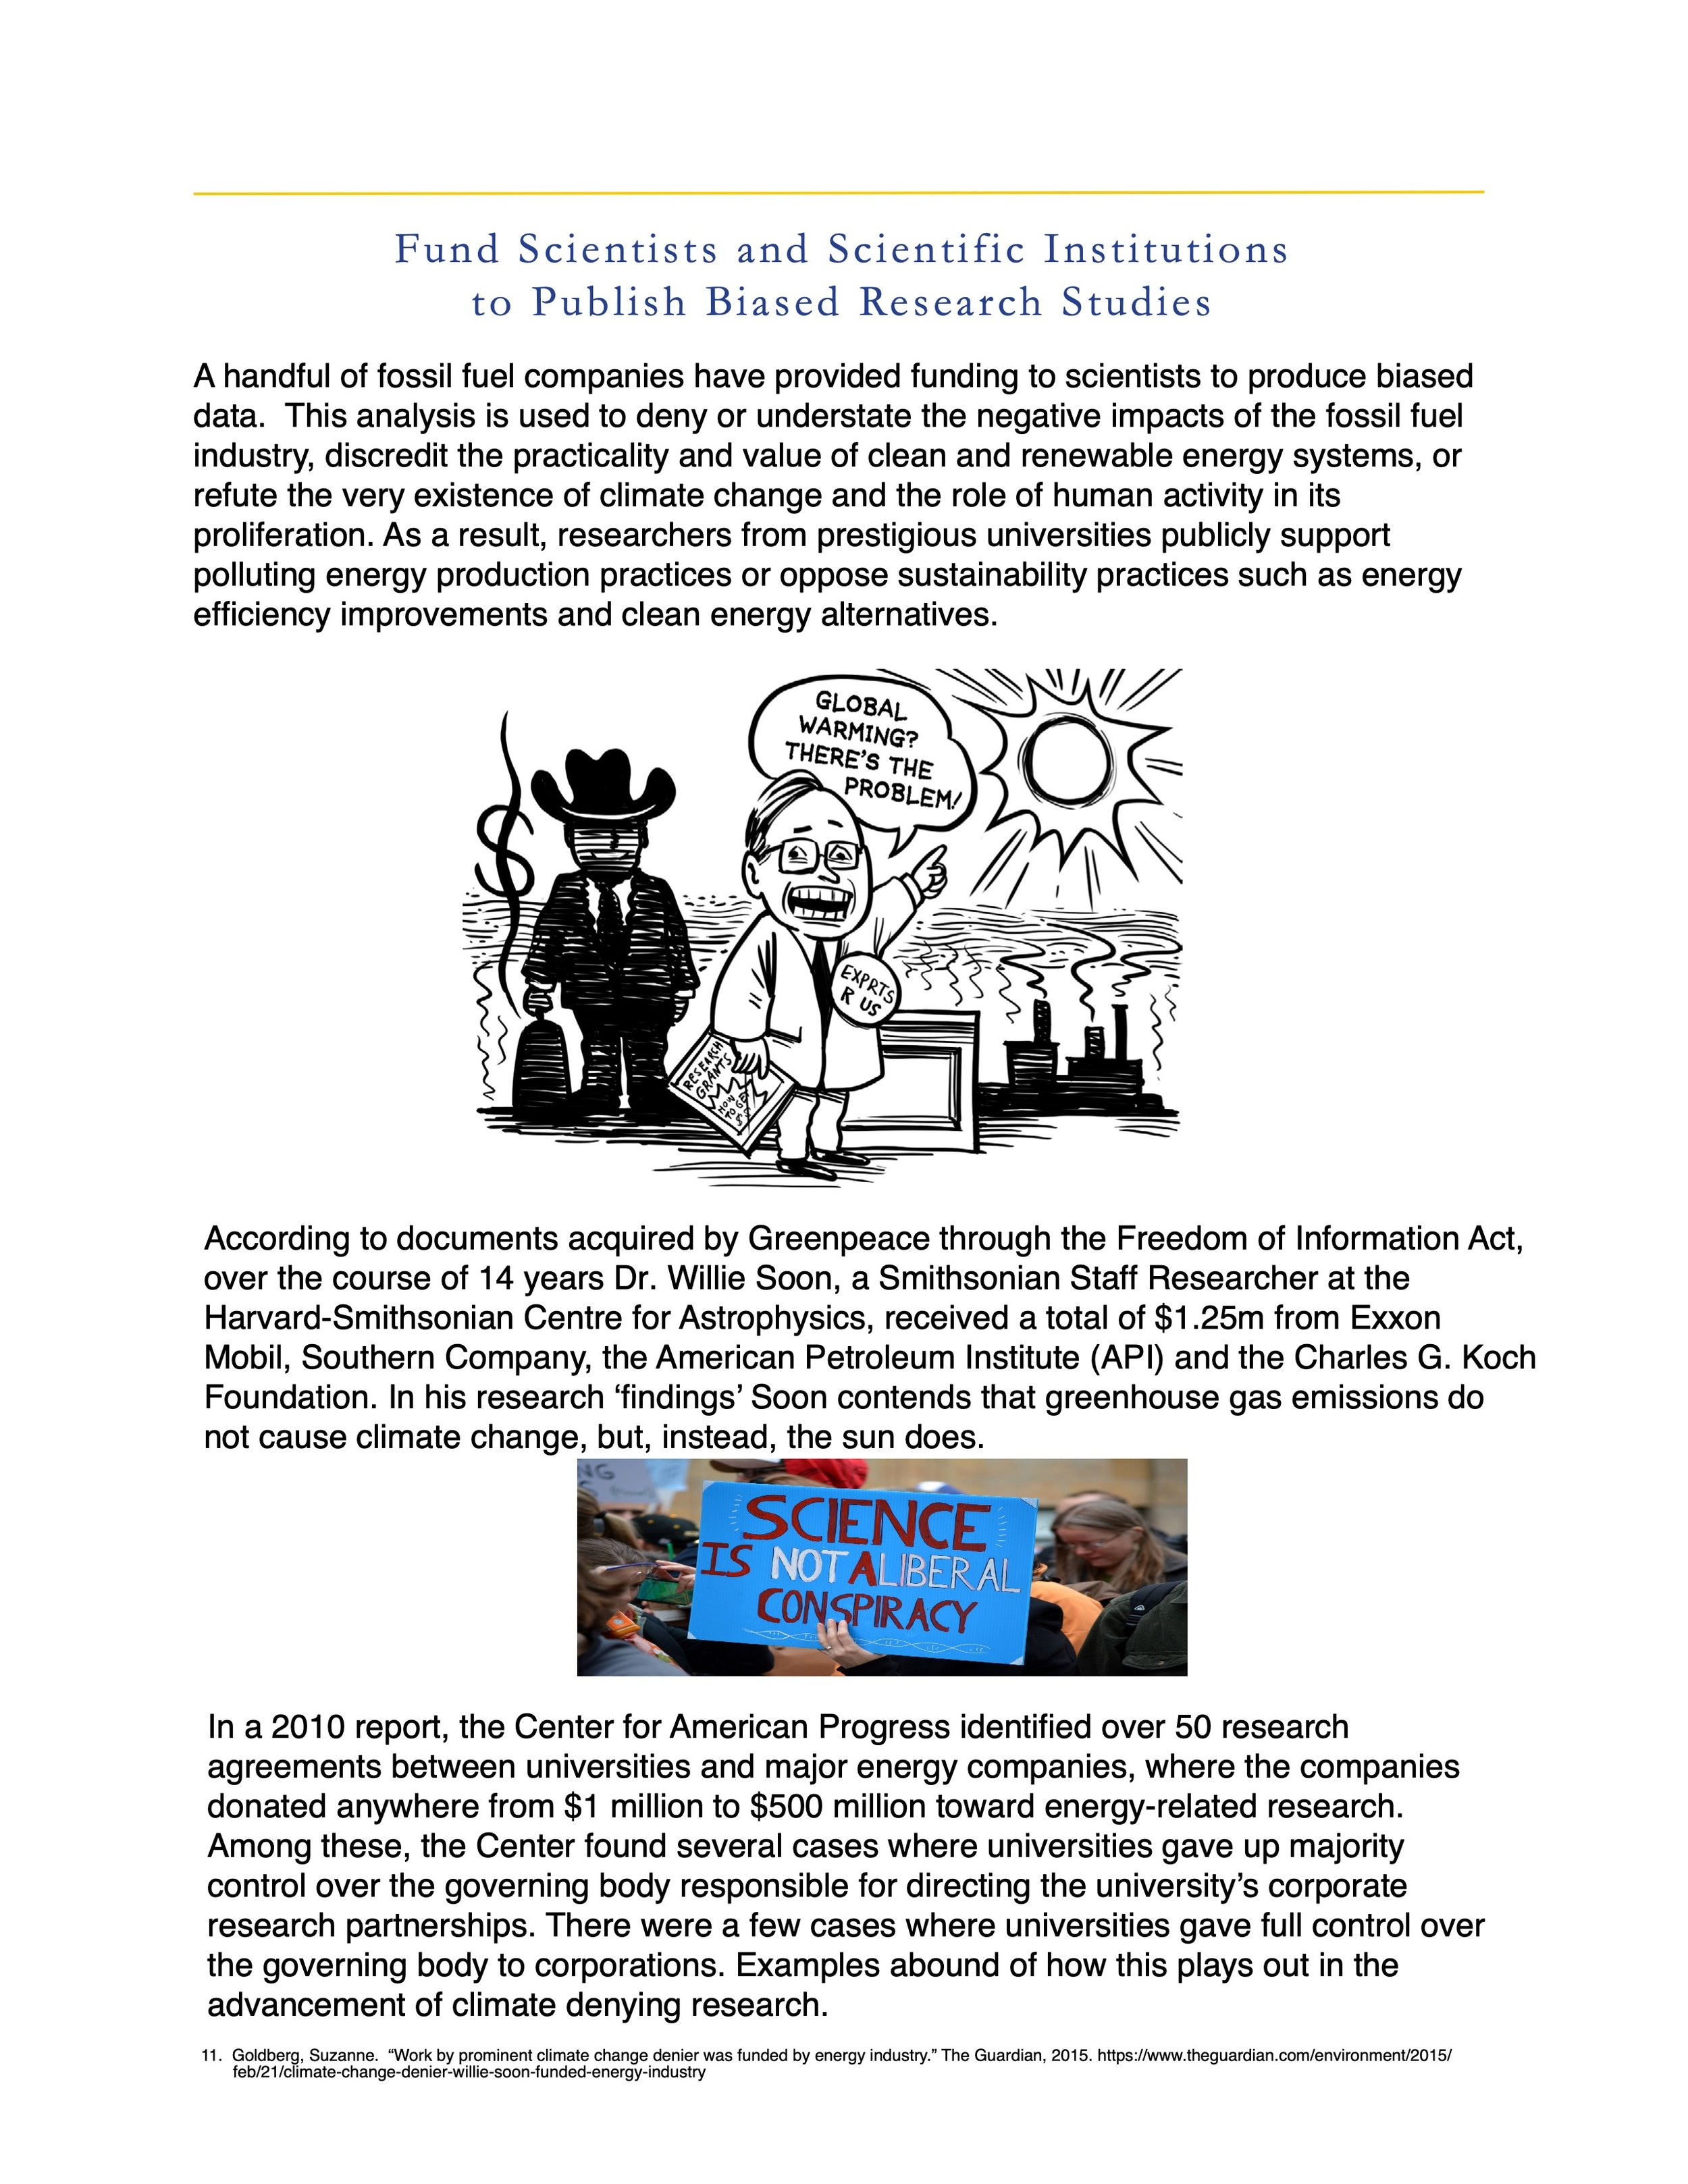 Fossil-Fueled-Foolery-An-Illustrated-Primer-on-the-Top-10-Manipulation-Tactics-of-the-Fossil-Fuel-Industry 7.jpeg